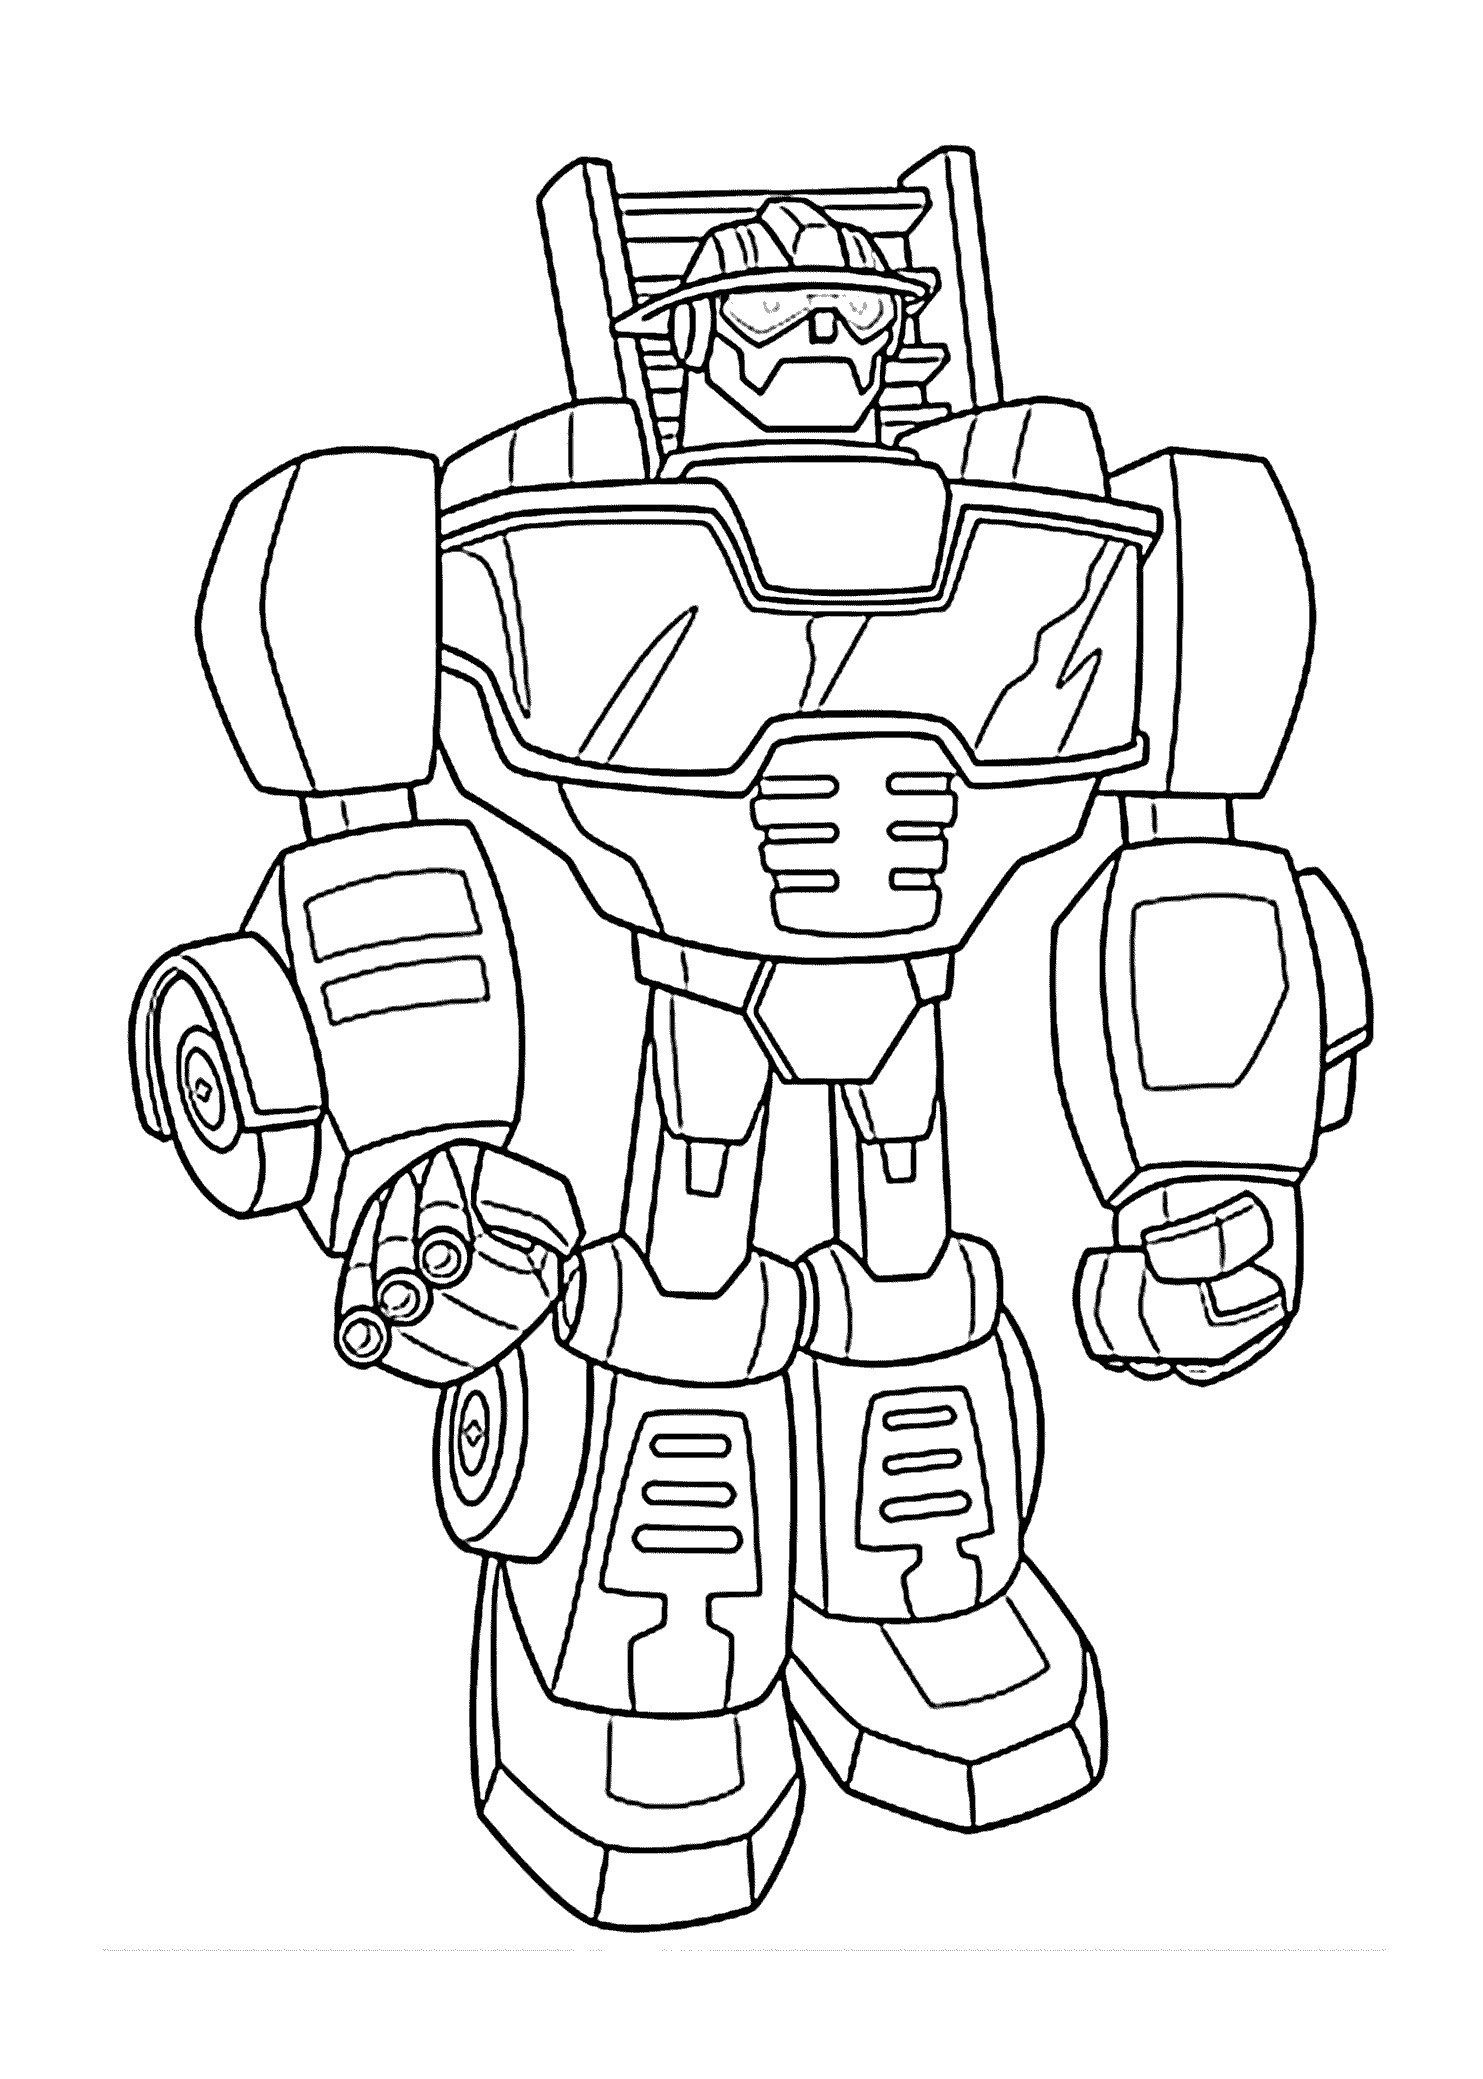 22 Brilliant Image Of Rescue Bots Coloring Pages Davemelillo Com Transformers Coloring Pages Bee Coloring Pages Rescue Bots Birthday Party